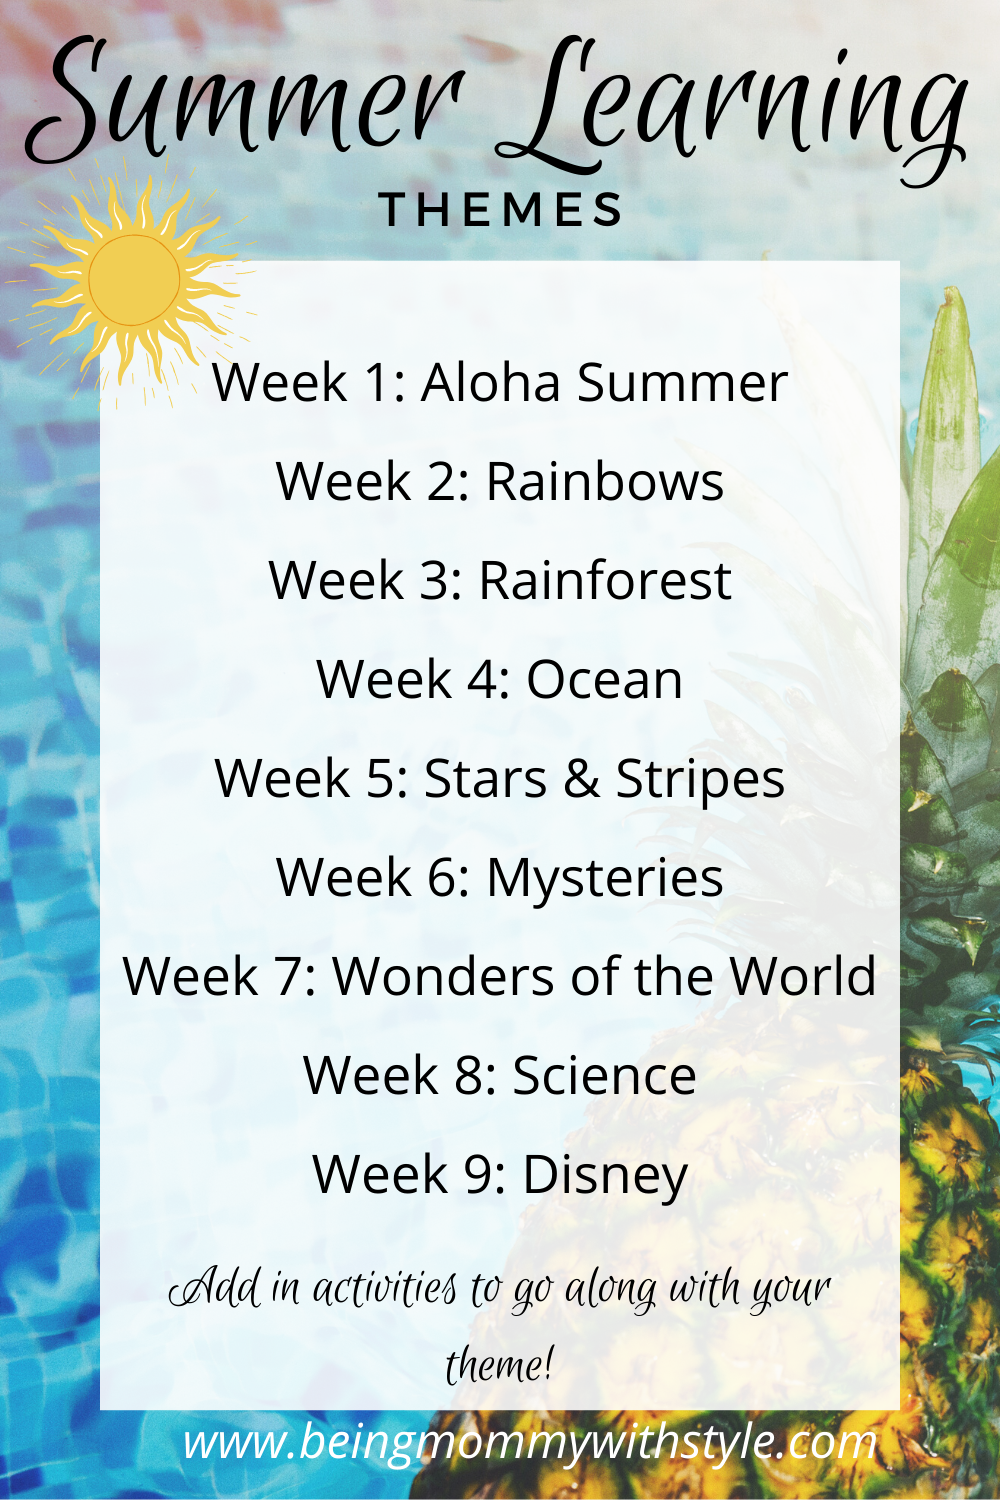 Summer Learning Themes